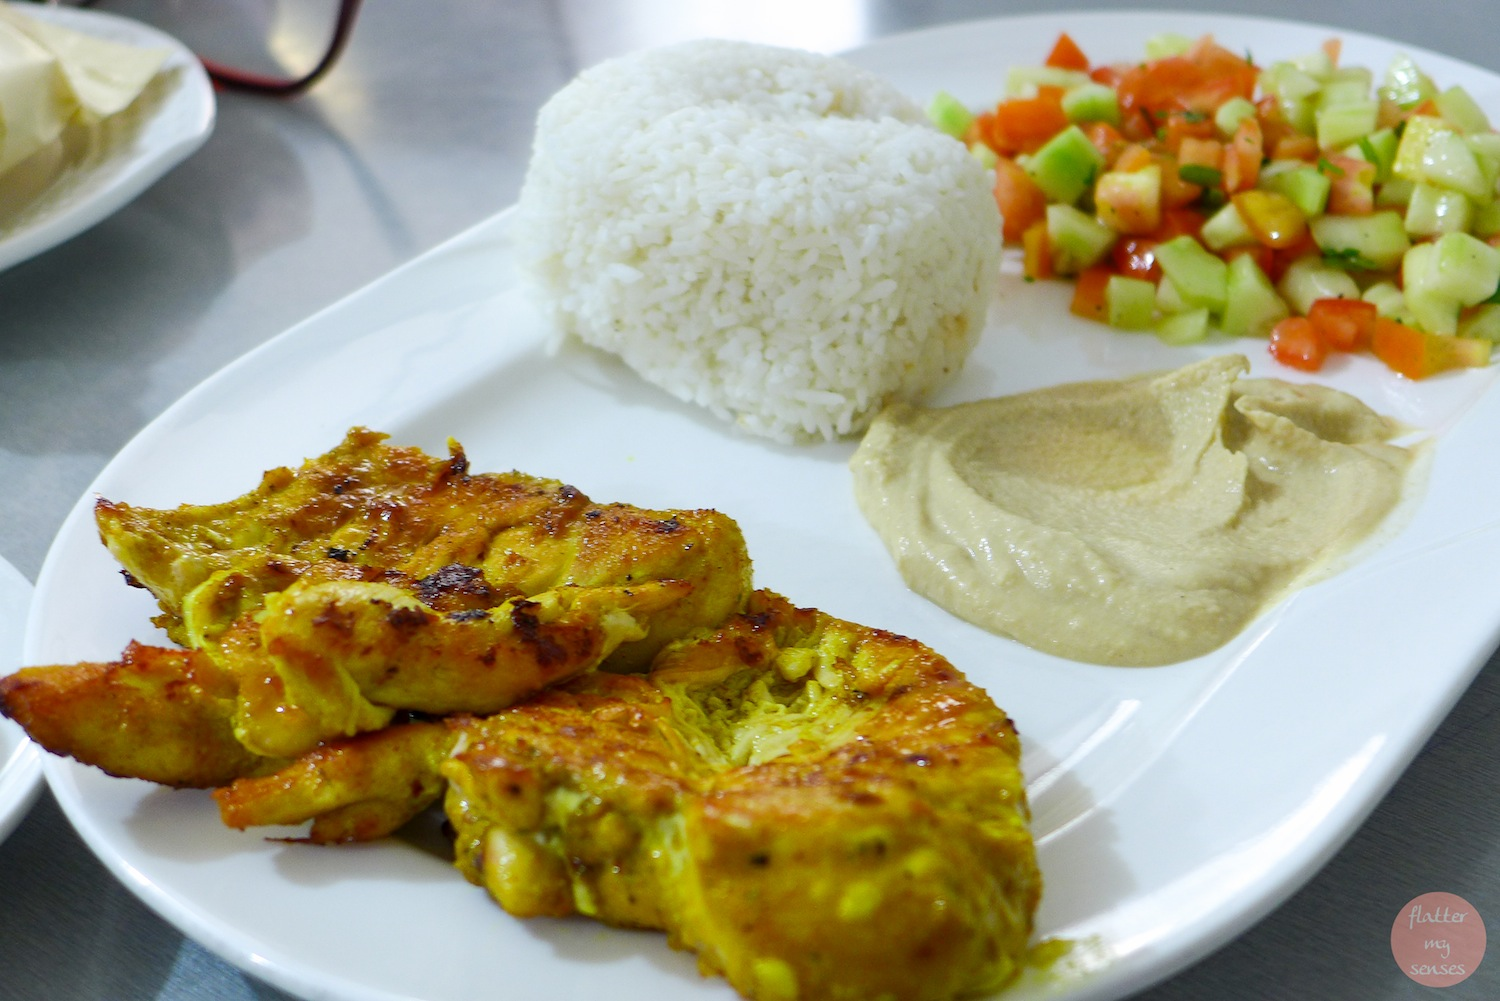 Chicken Breast on the Grill (Php 280). Again, you can have this with mashed potato, french fries or inside a pita.